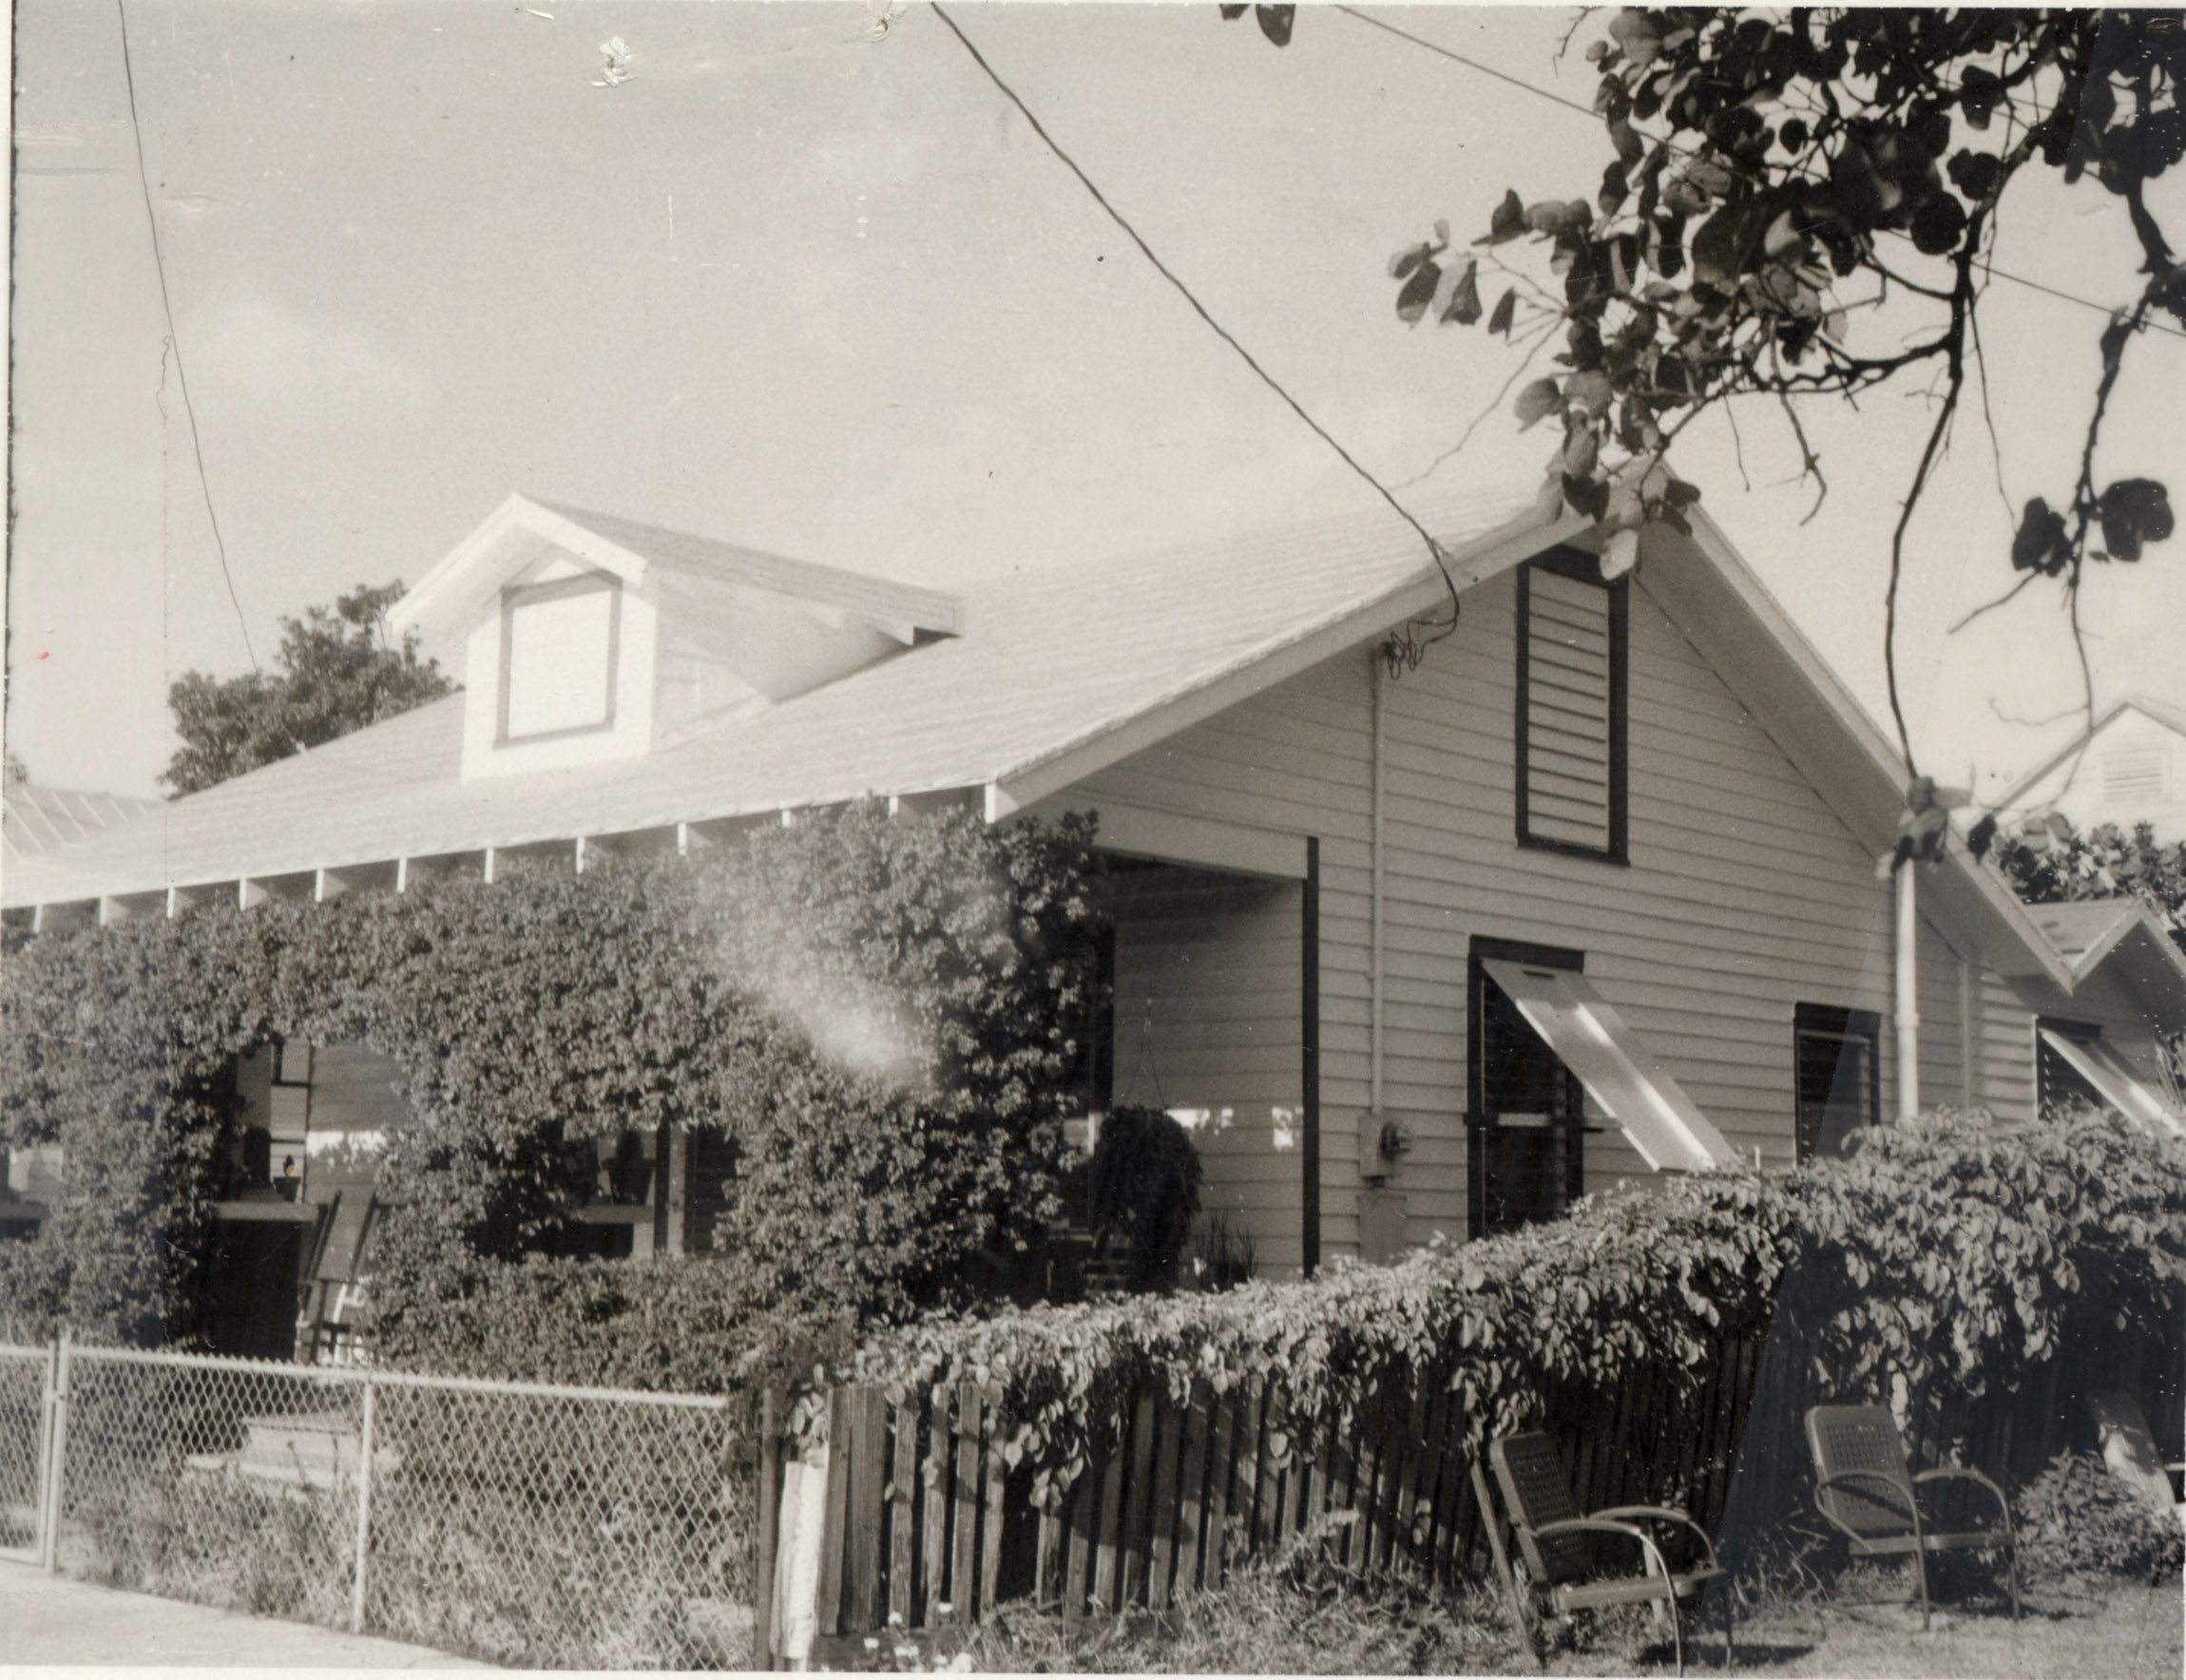 Photo taken by the Property Appraiser's office c1965; 813 Frances St.; built 1920's; Tract 6, Sqr 4, Pt Lot 10 & 11